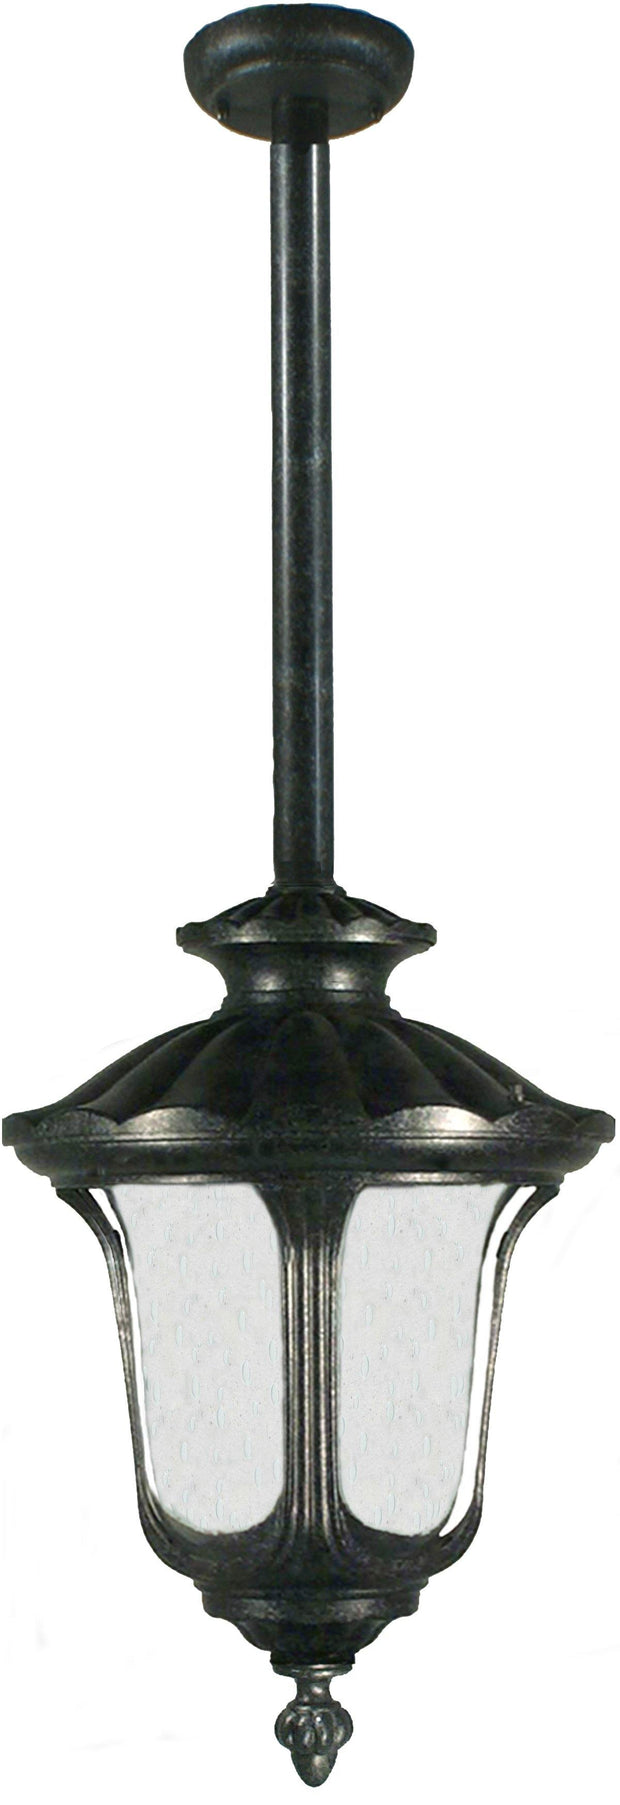 Waterford Exterior Rod Pendant Light - Lighting Superstore